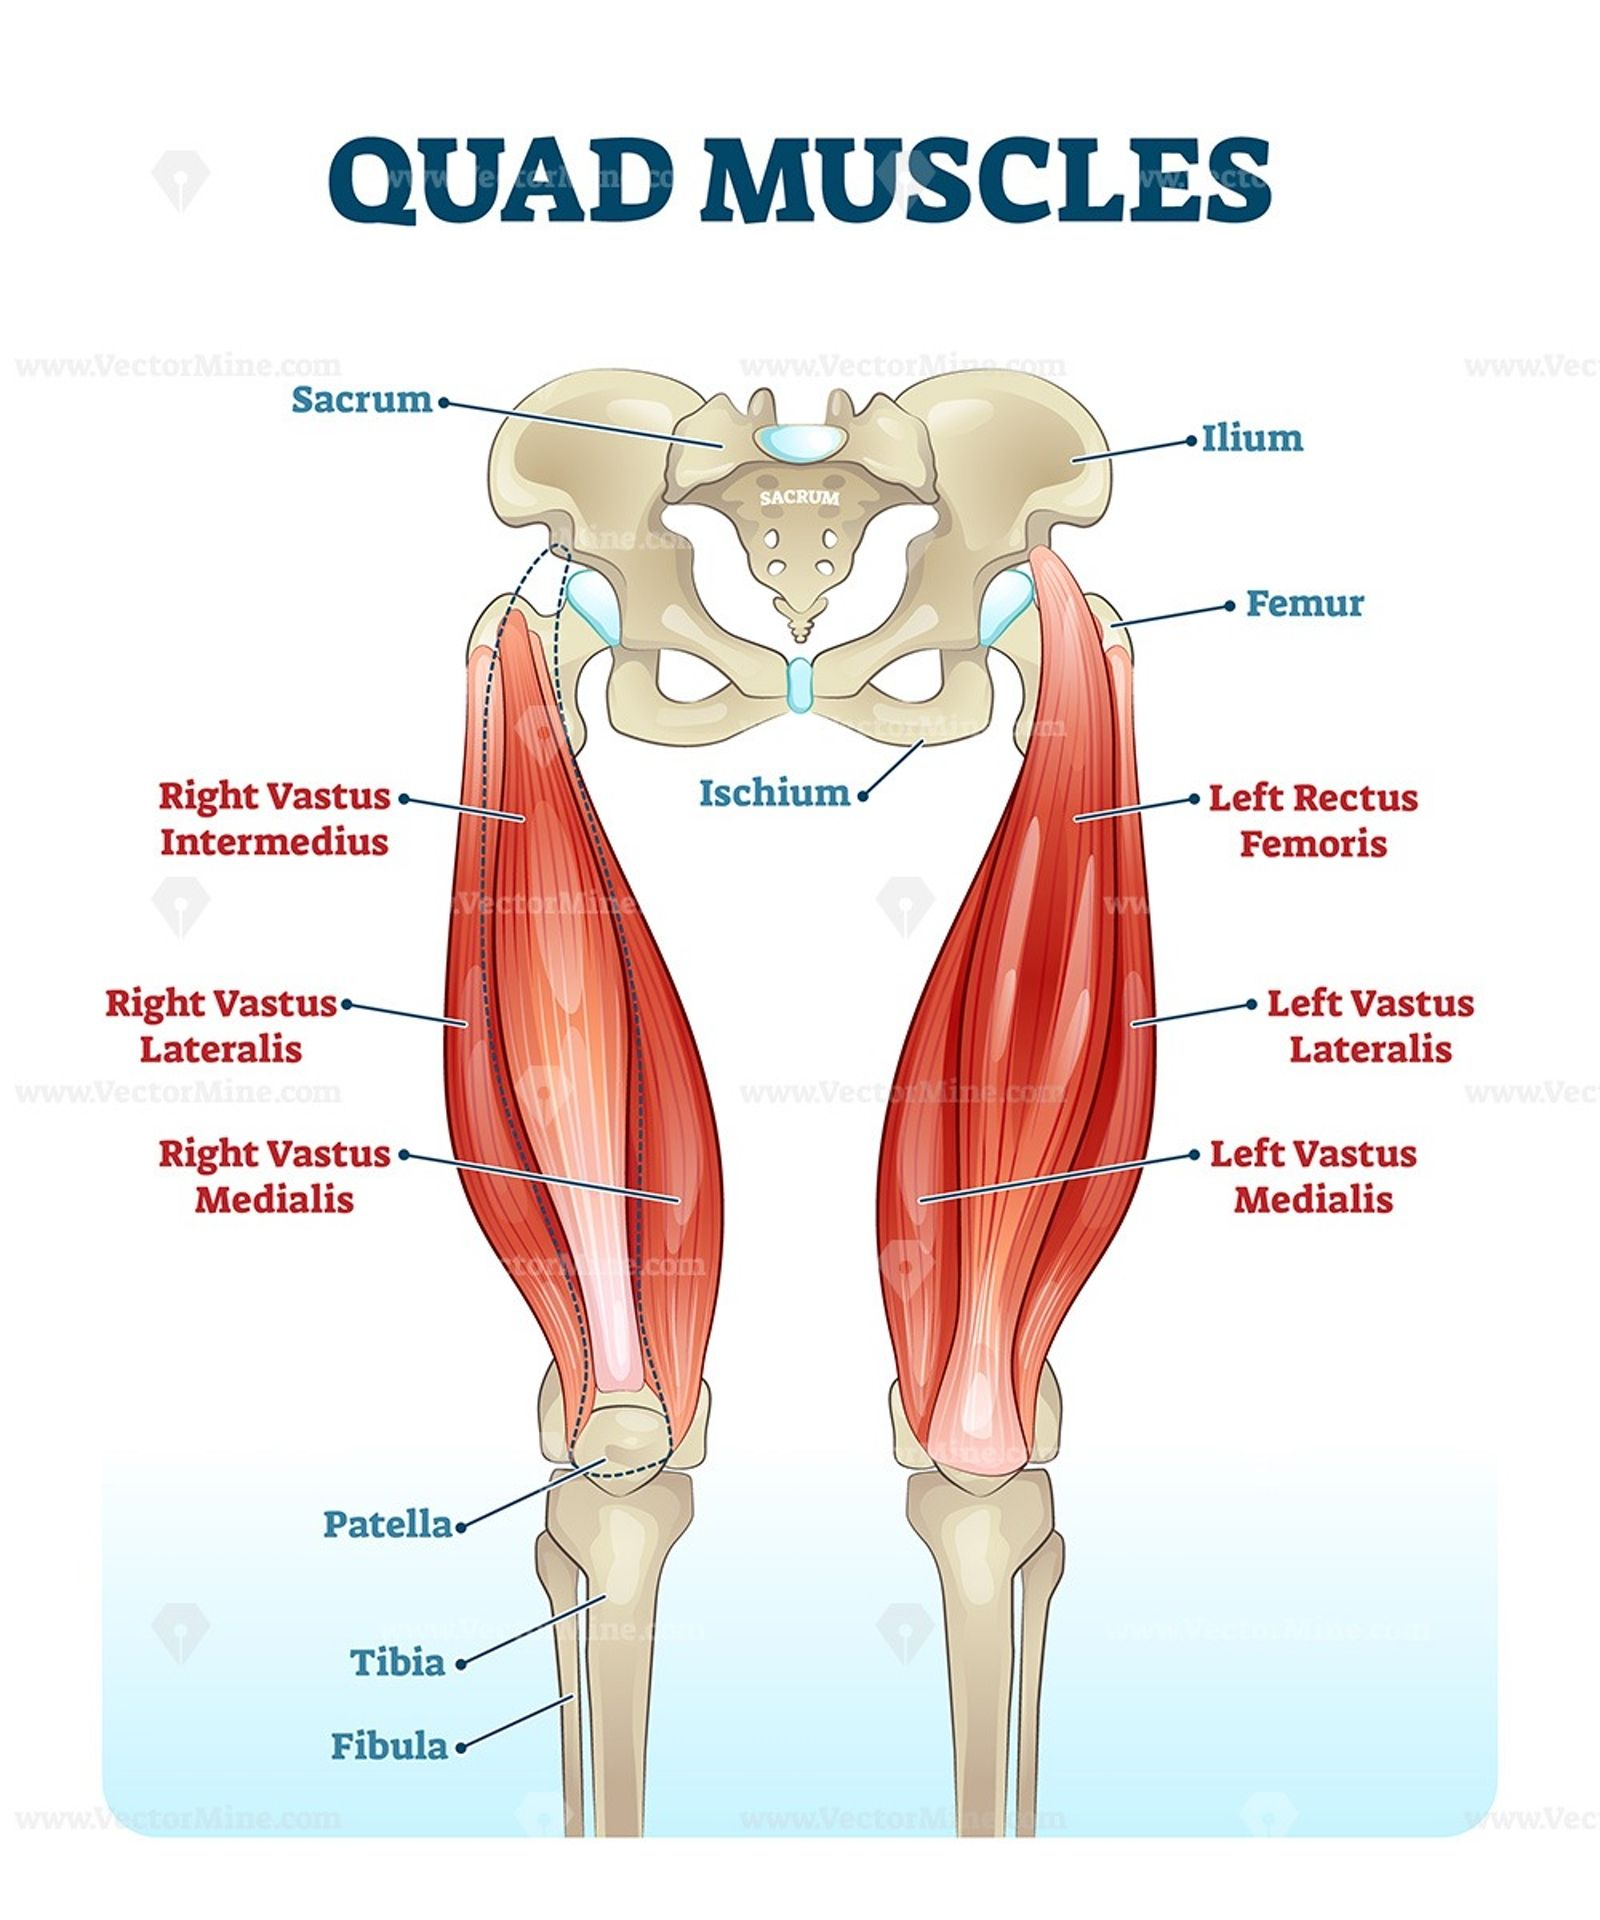 Quad Leg Muscles Anatomy Labeled Diagram In 2020 Leg Muscles Anatomy Muscle Anatomy Leg Muscles